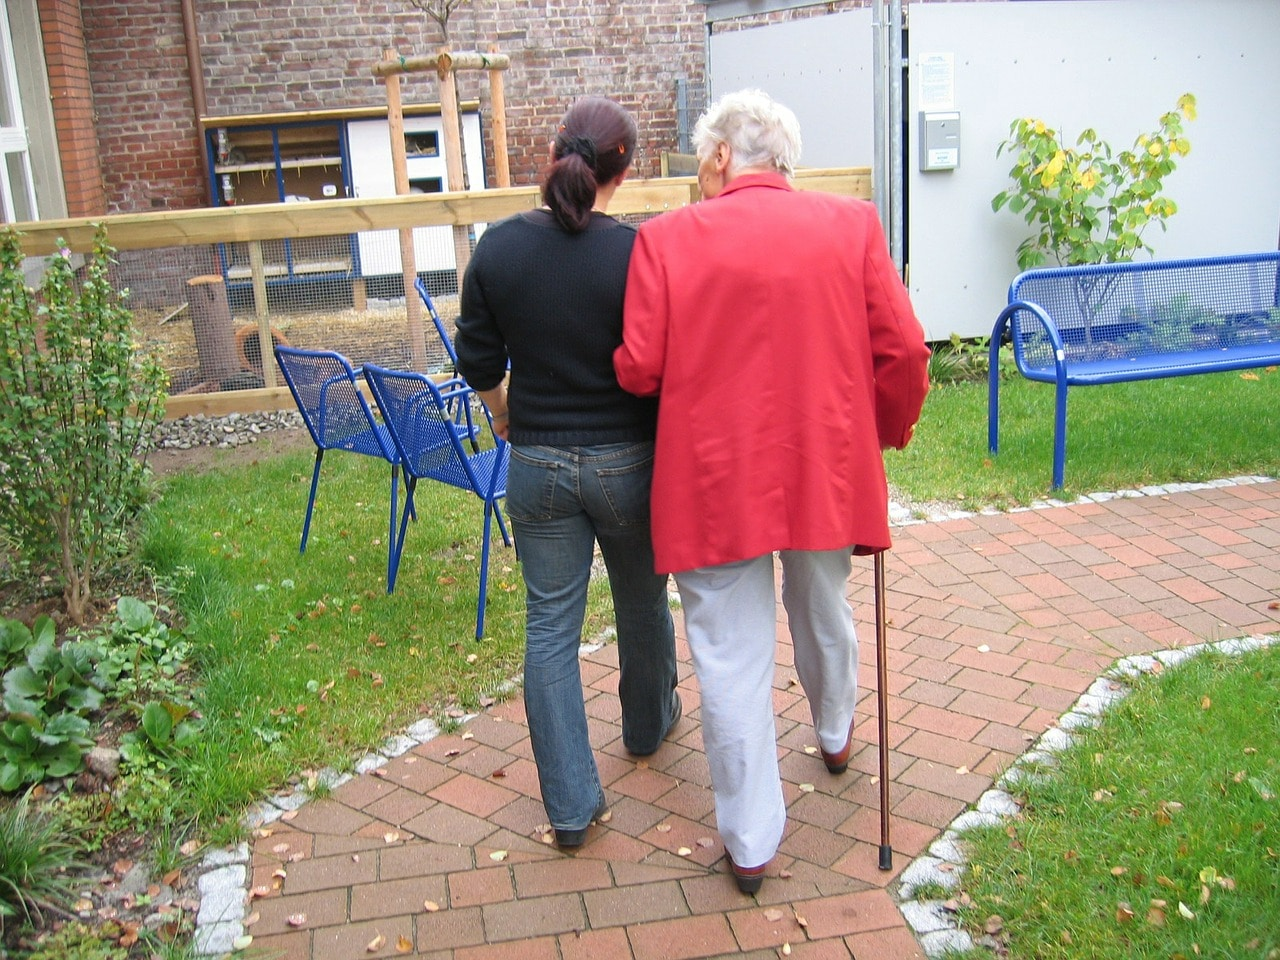 Pre-employment Screening in the Care Industry